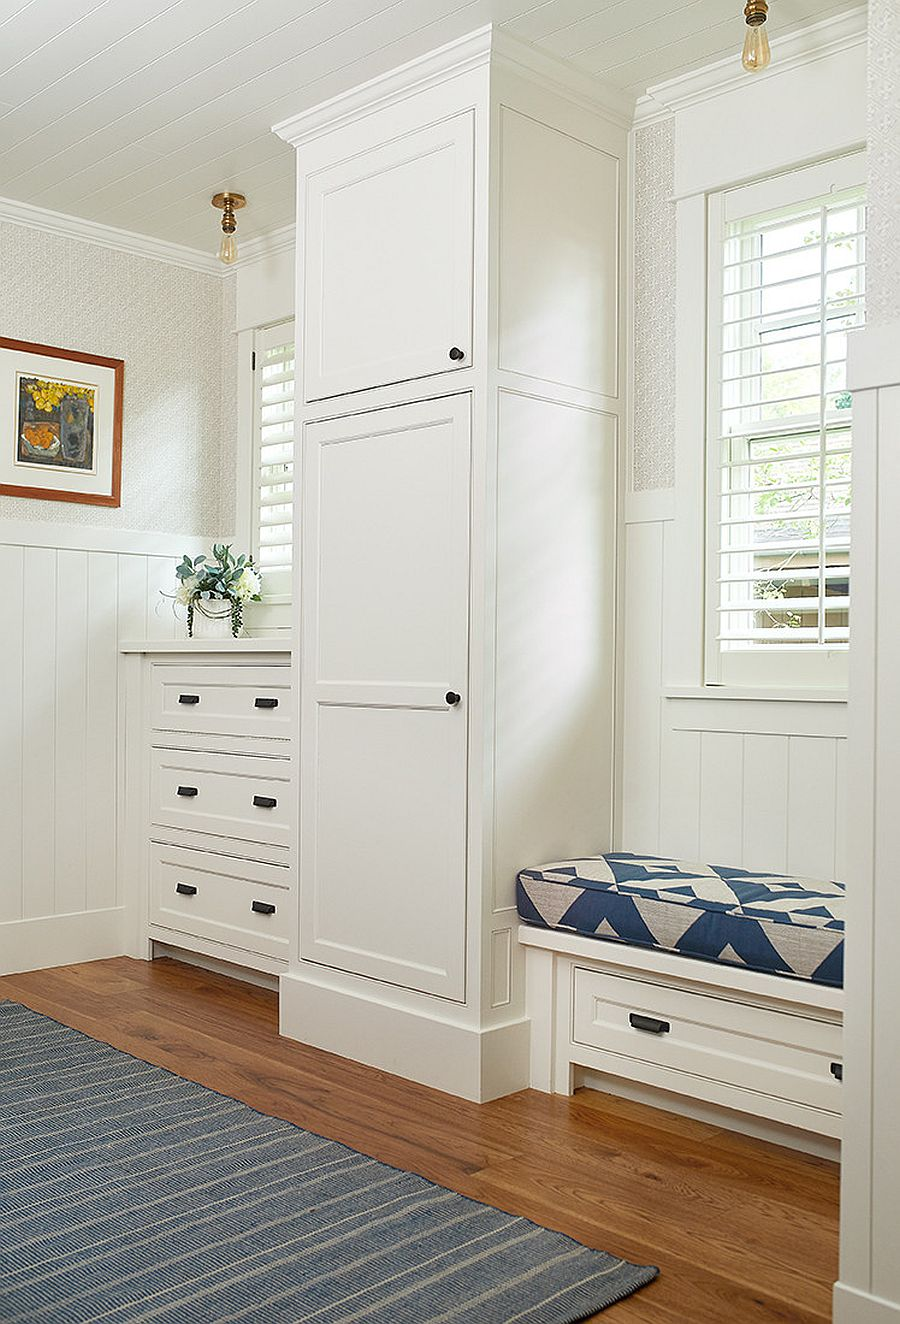 Closed-cabinets-storage-units-and-a-lovely-little-bench-in-the-mudroom-work-better-in-a-home-without-kids-50437